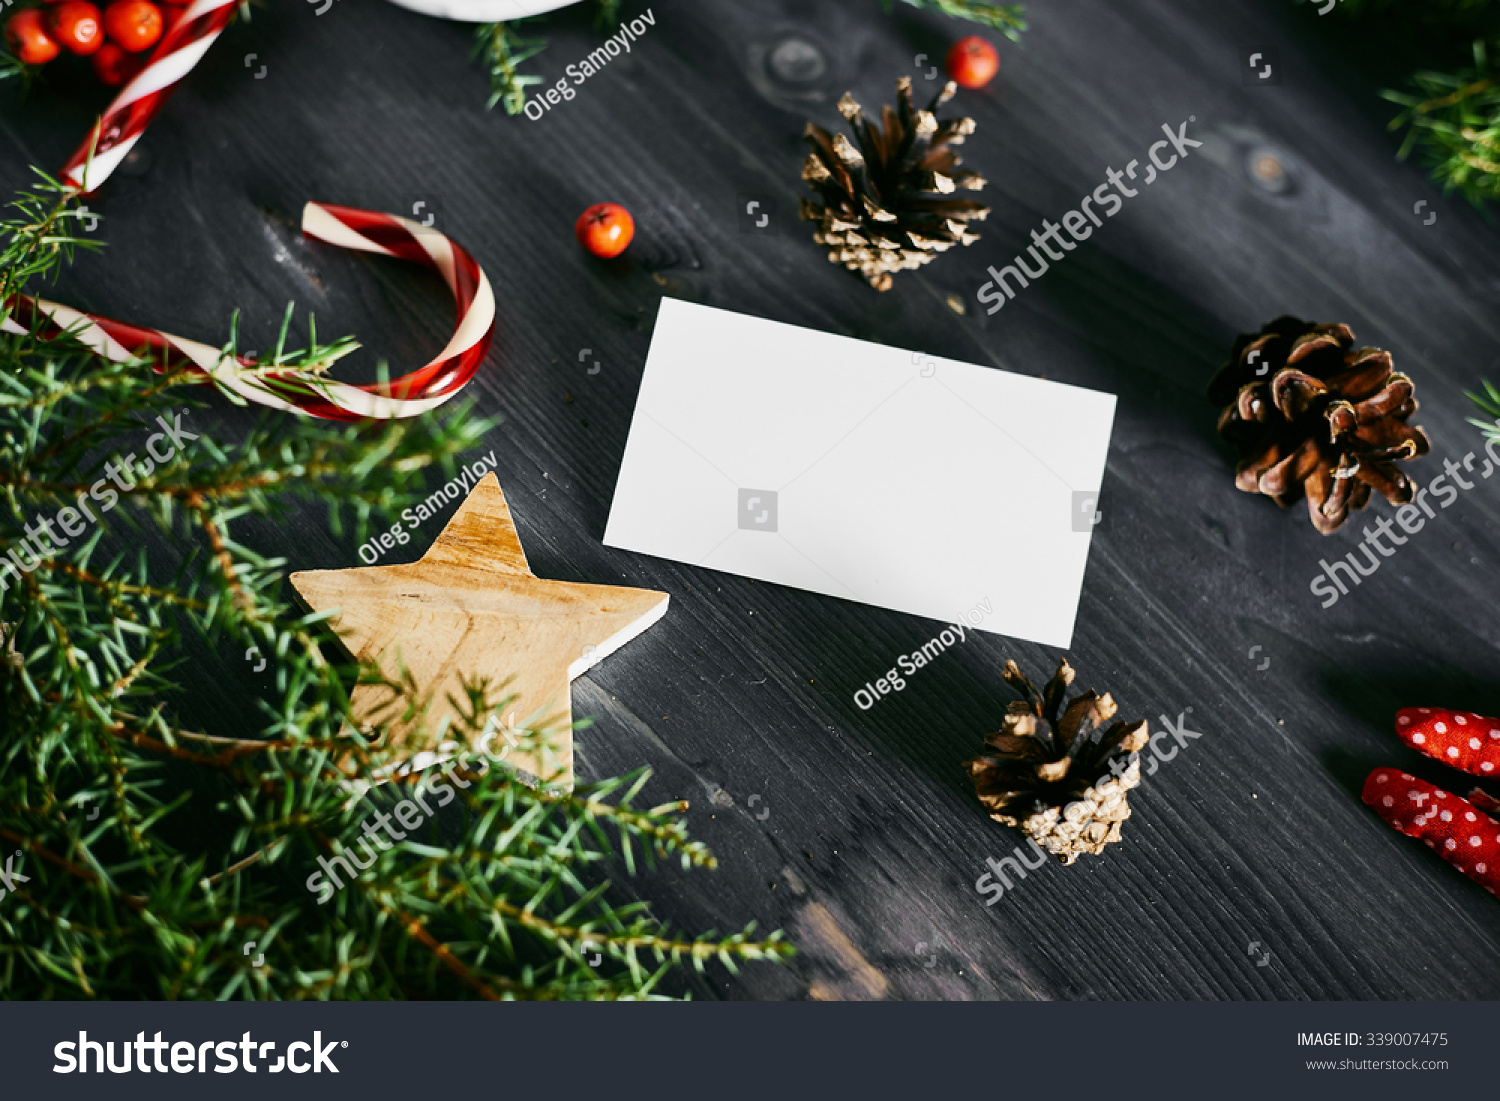 Blank business card on christmas wooden stock photo royalty free blank business card on a christmas wooden background reheart Images